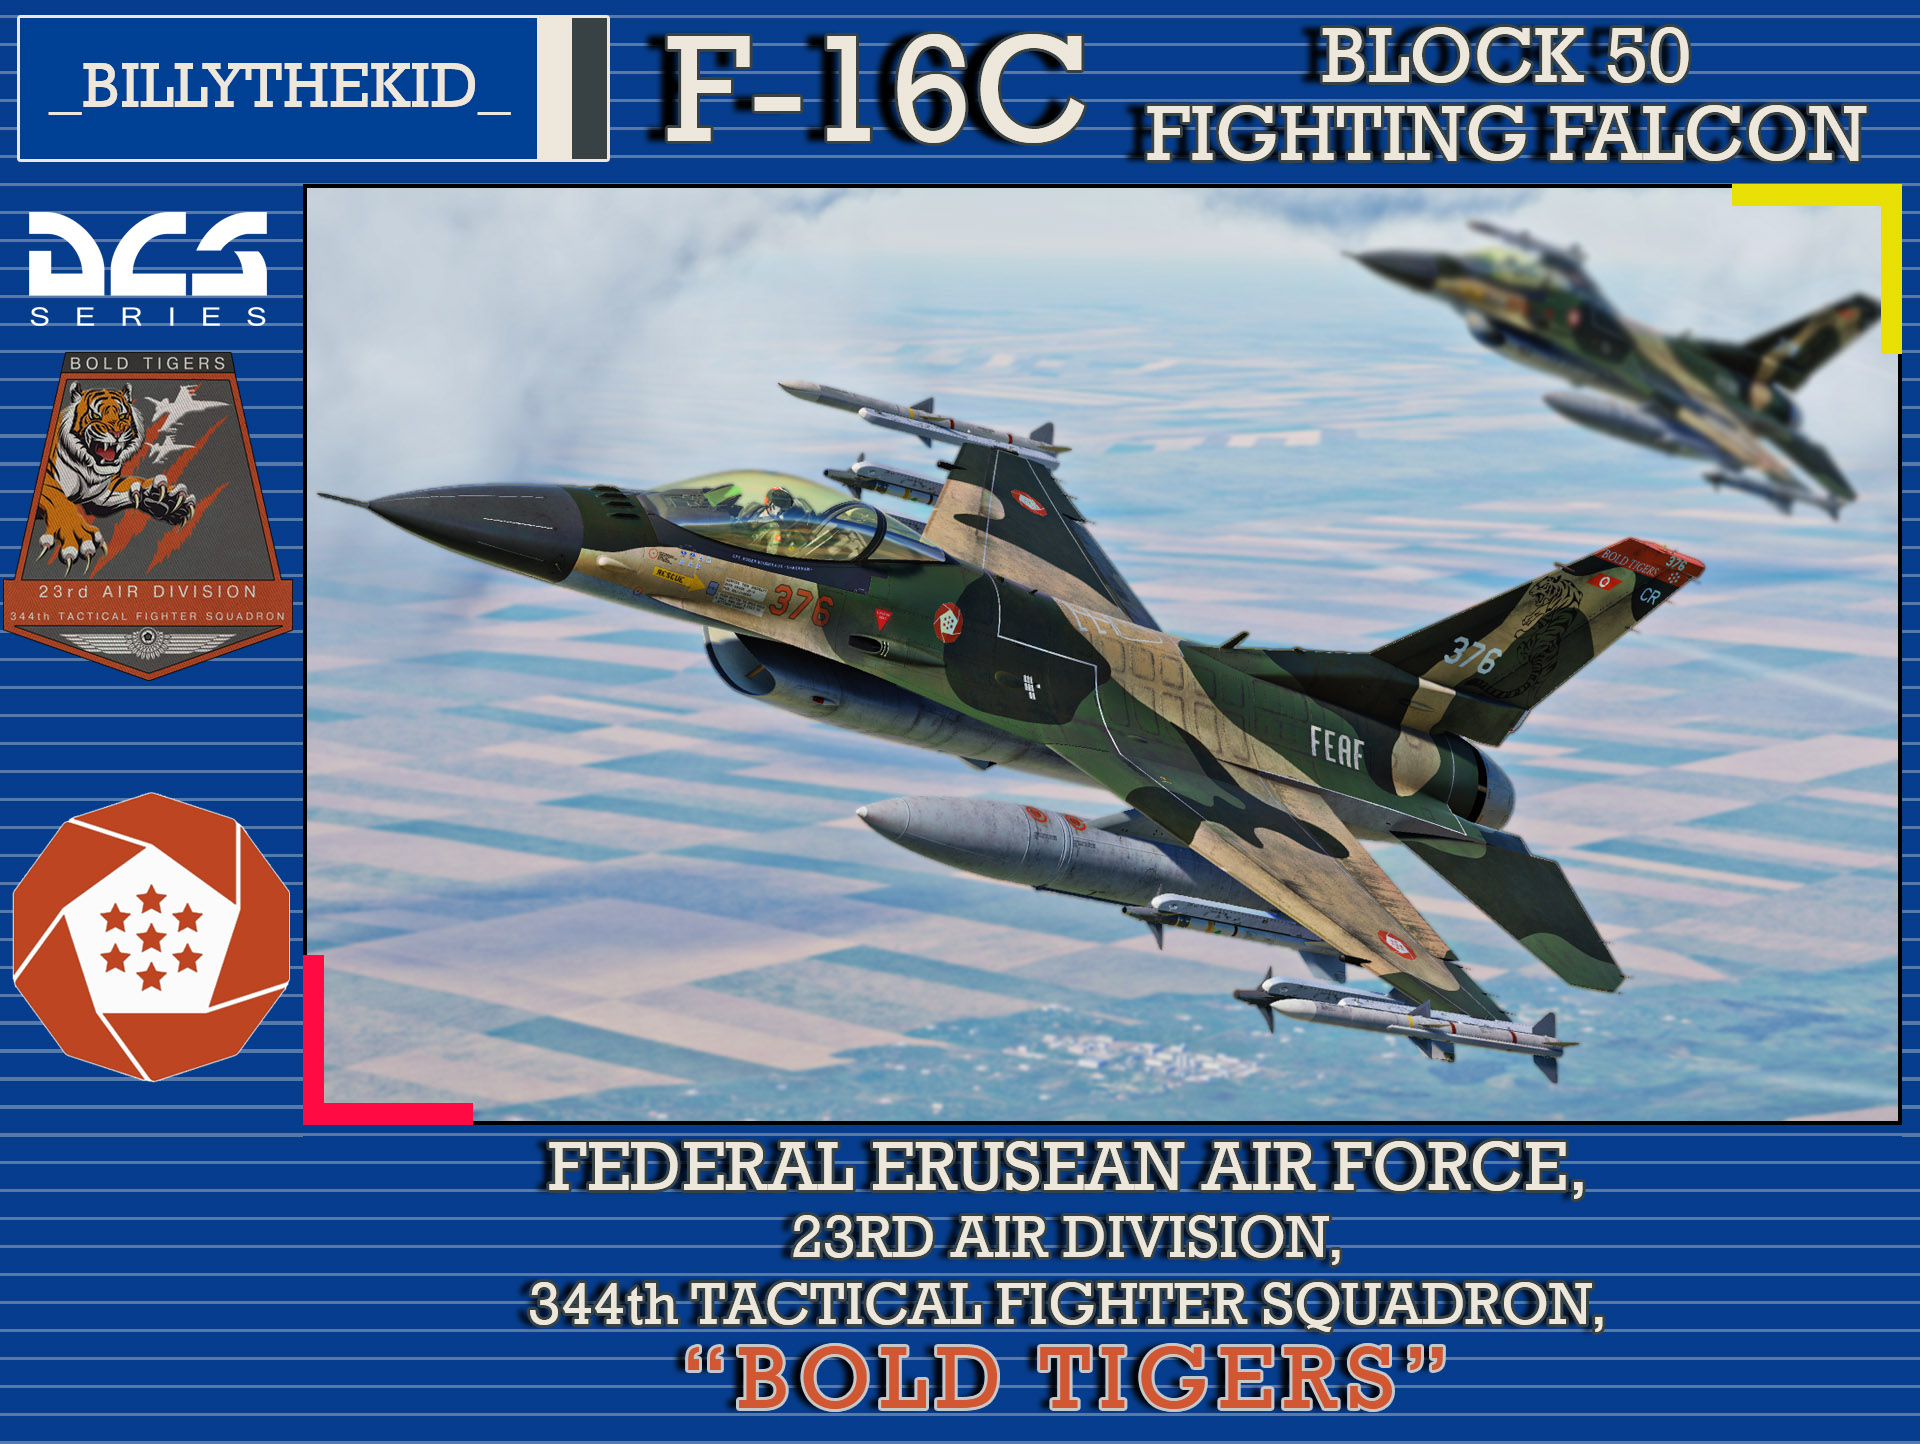 "Ace Combat - Federal Erusean Air Force 23rd Air Division, 344th Tactical Fighter Squadron ""Bold Tigers"" F-16C Block 50 Fighting Falcon"